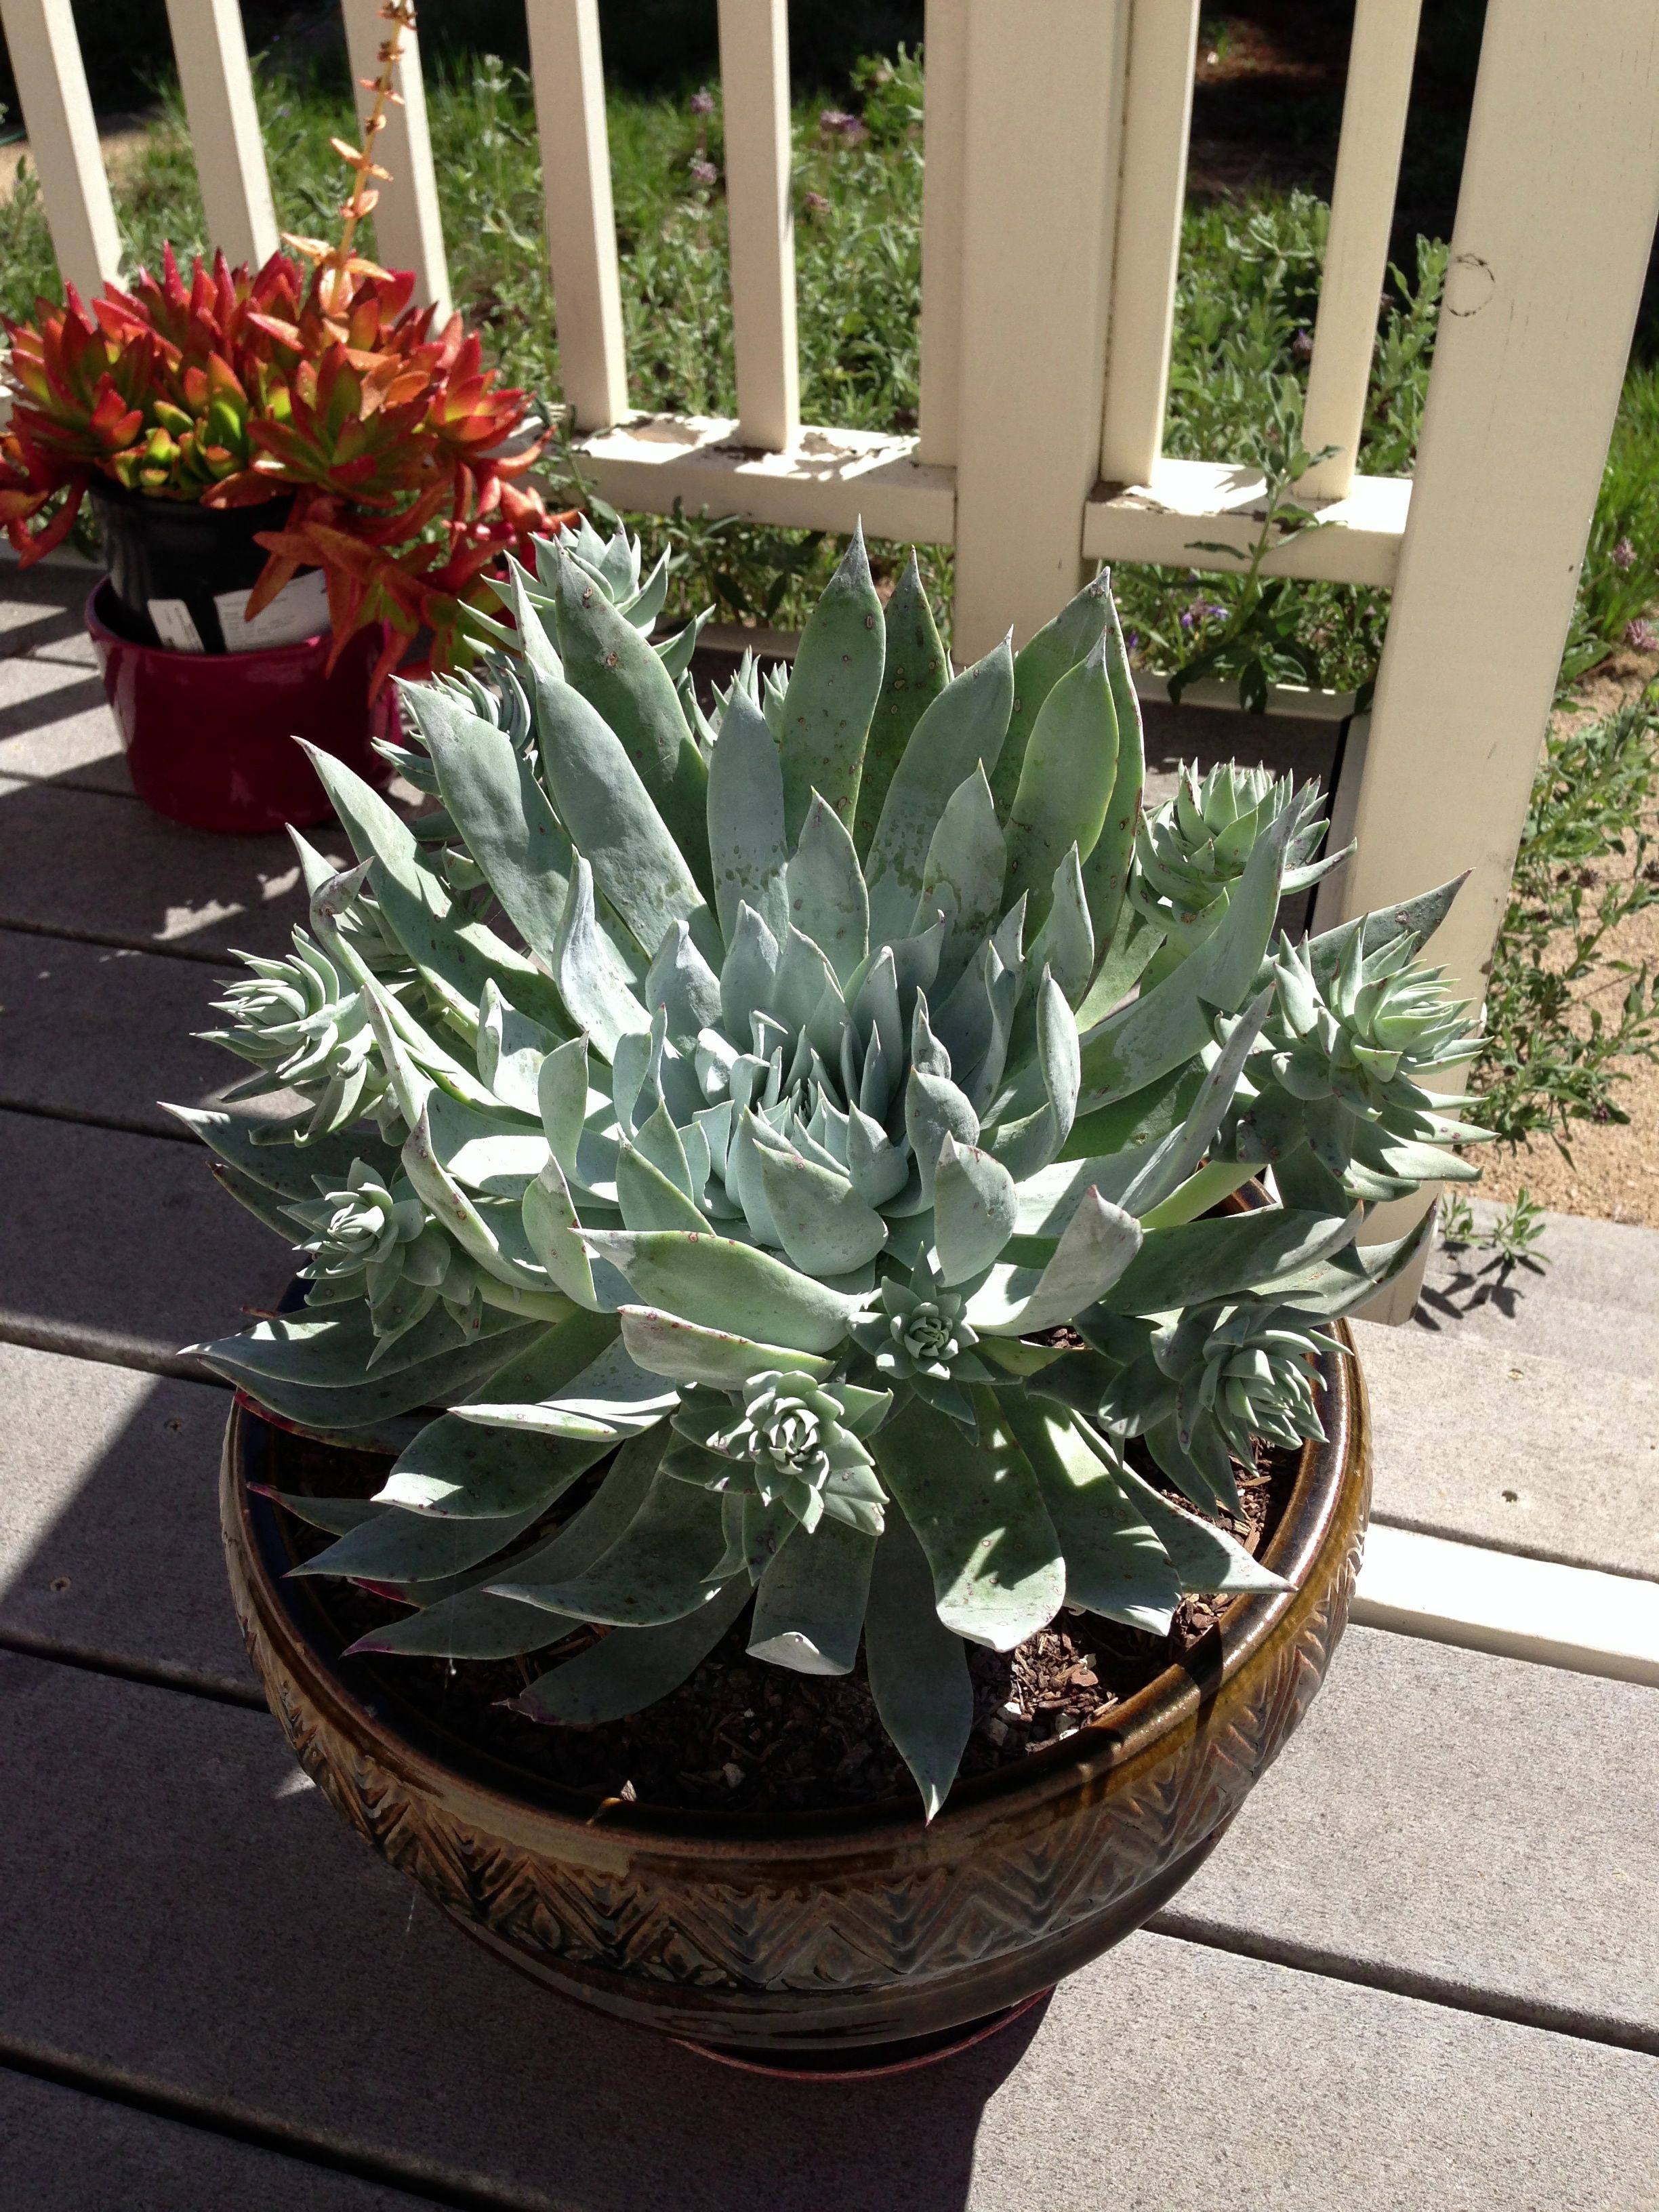 chalk dudleya pulverulenta potted